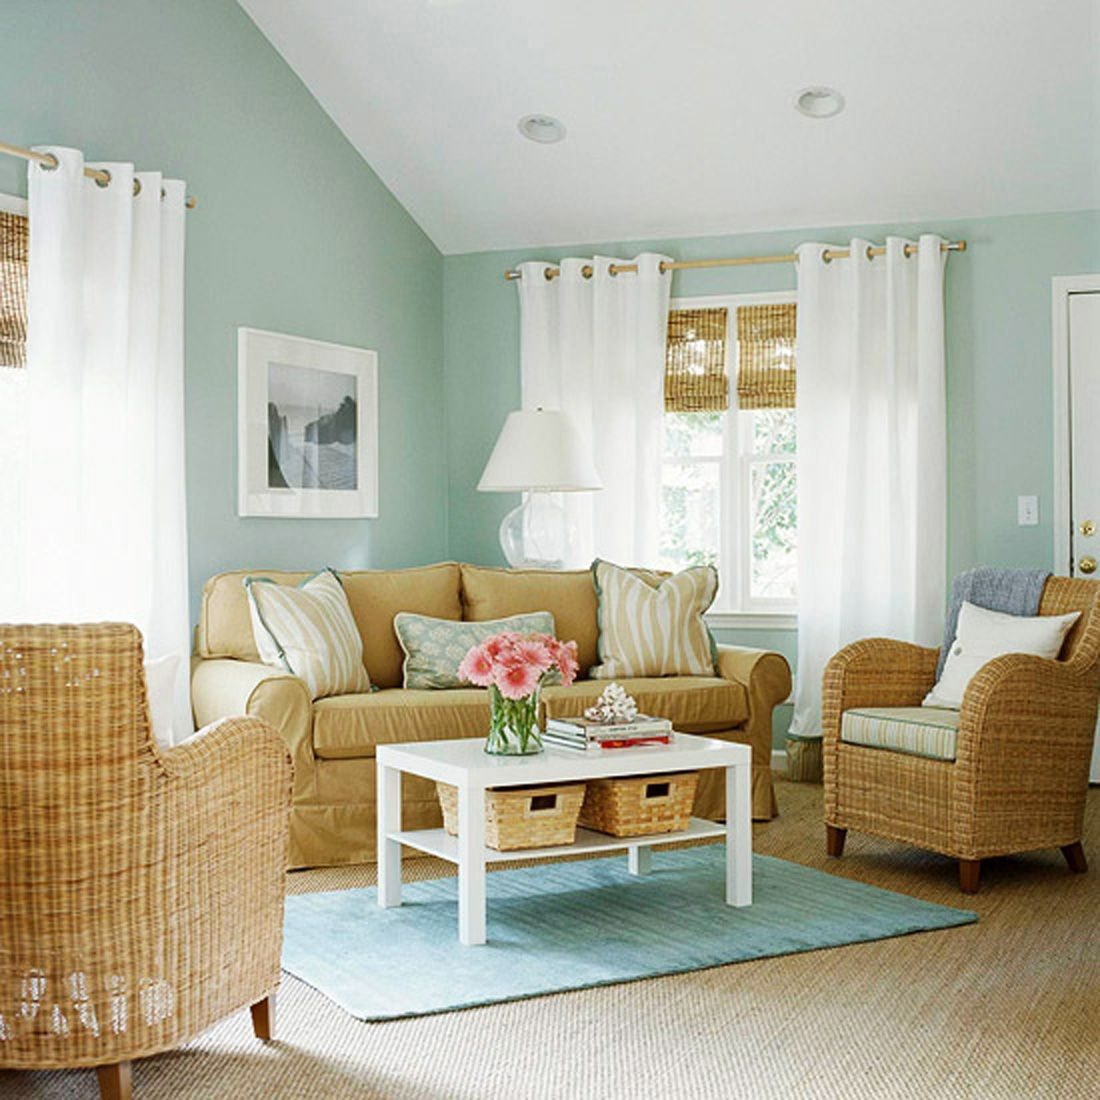 Light Blue Living Room Ideas Creative Sky Blue And White Scheme Color Ideas For Living Room Decorating .